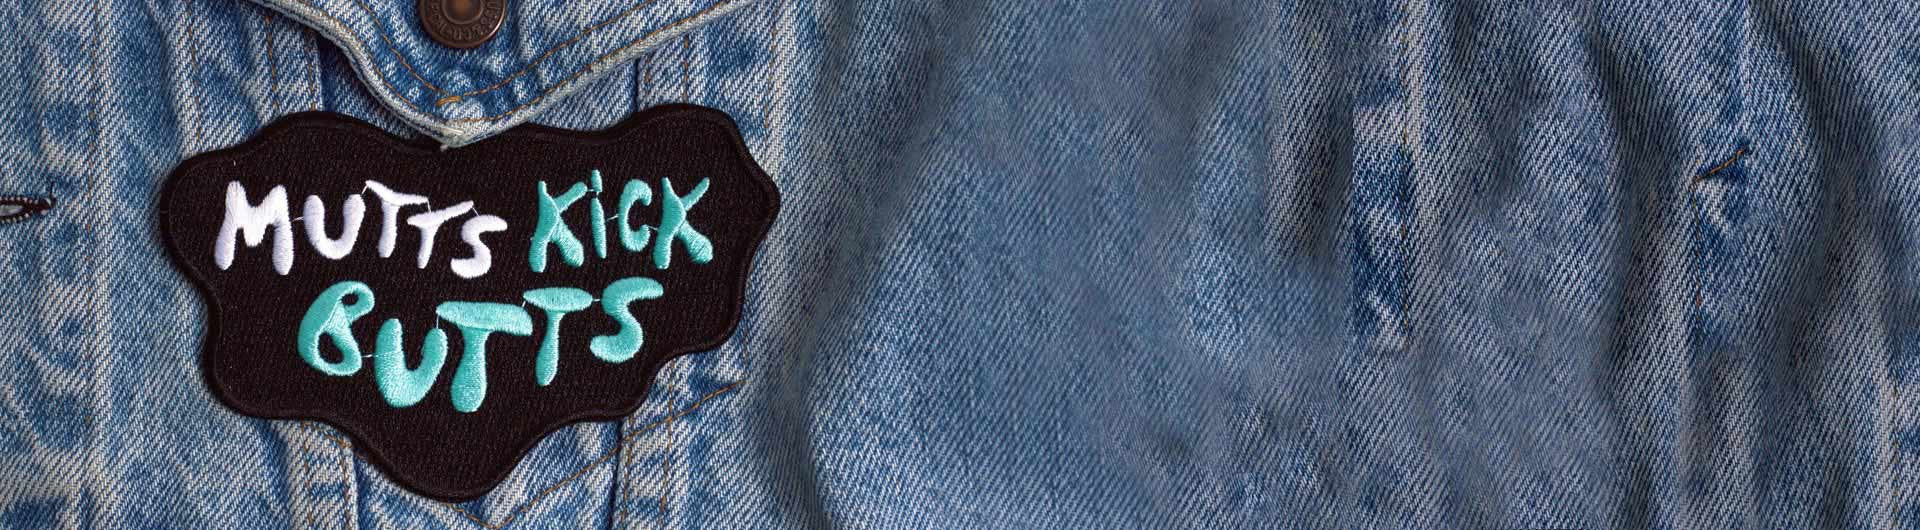 Mutts Kick Butts Dog Patches applyed on jacket | Zee.Dog